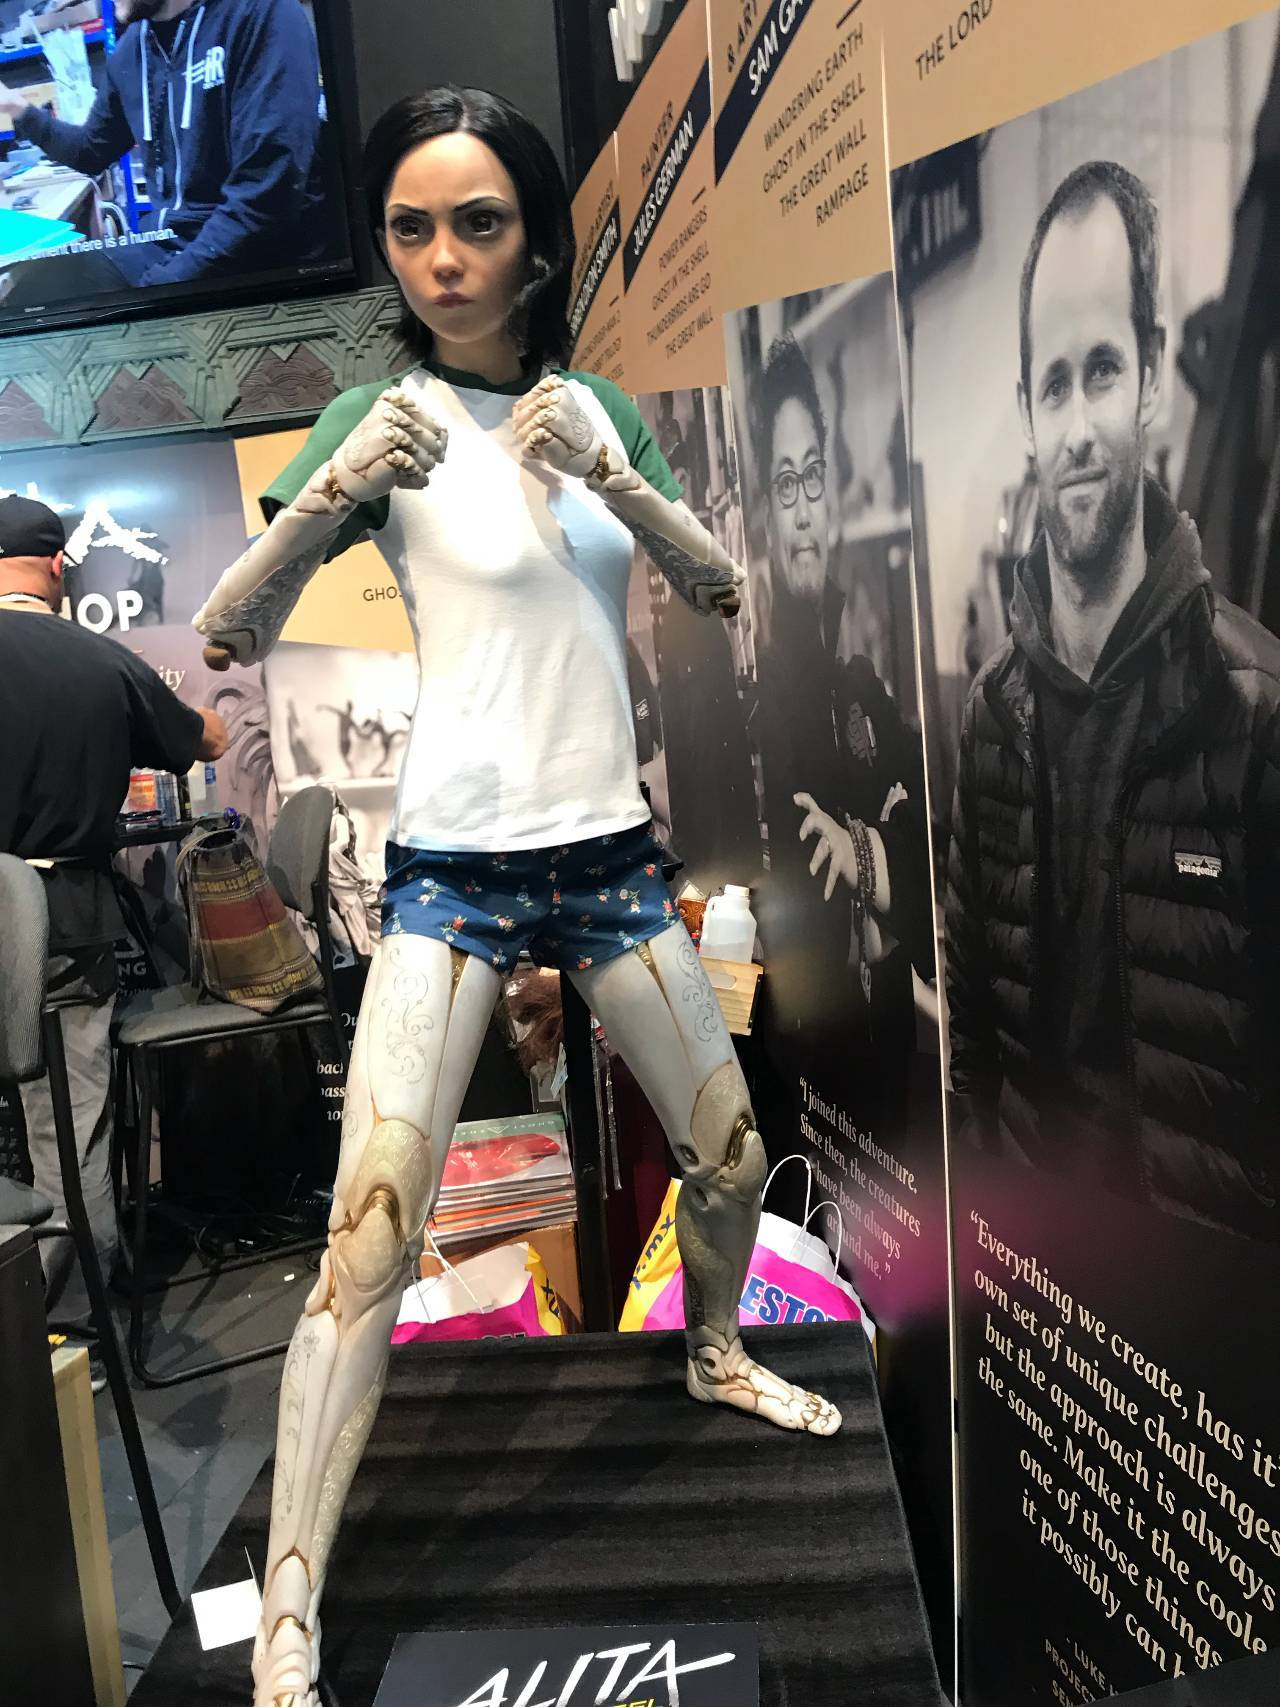 Alita Battle Angel Trailer >> 'Alita: Battle Angel' Reveals New Look at Alita at SDCC